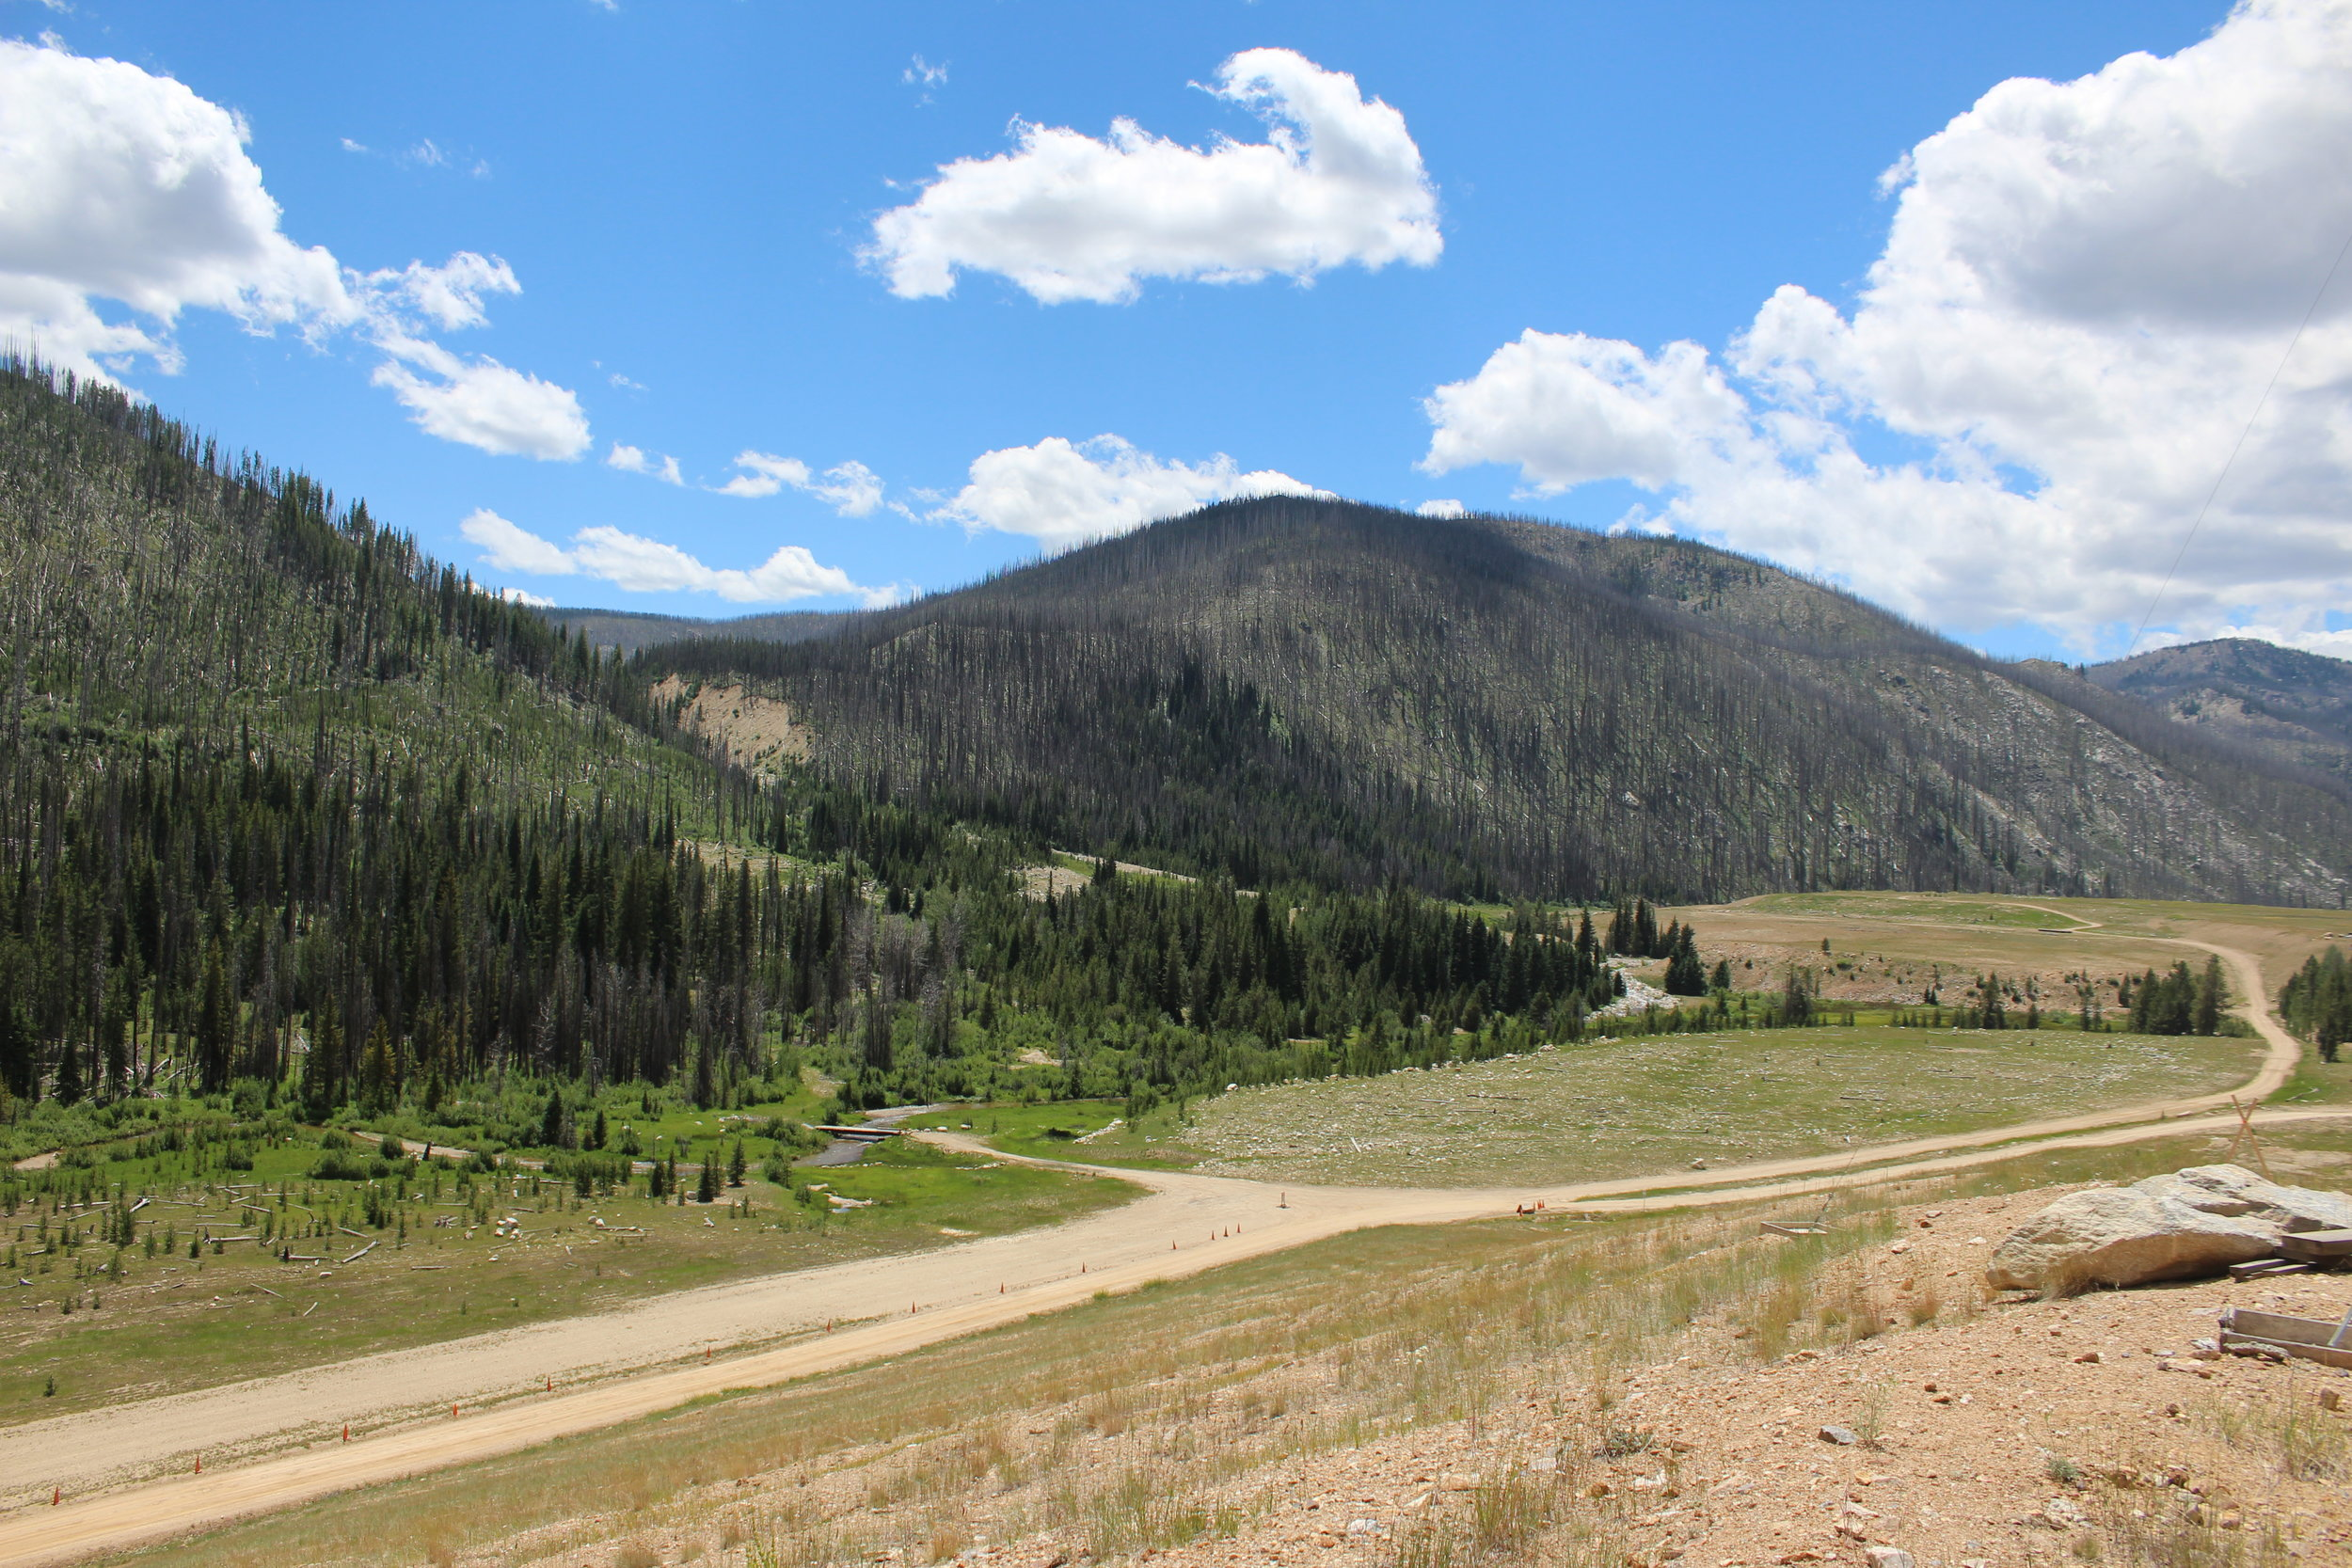 A contrast of restoration and what mining operations leave behind